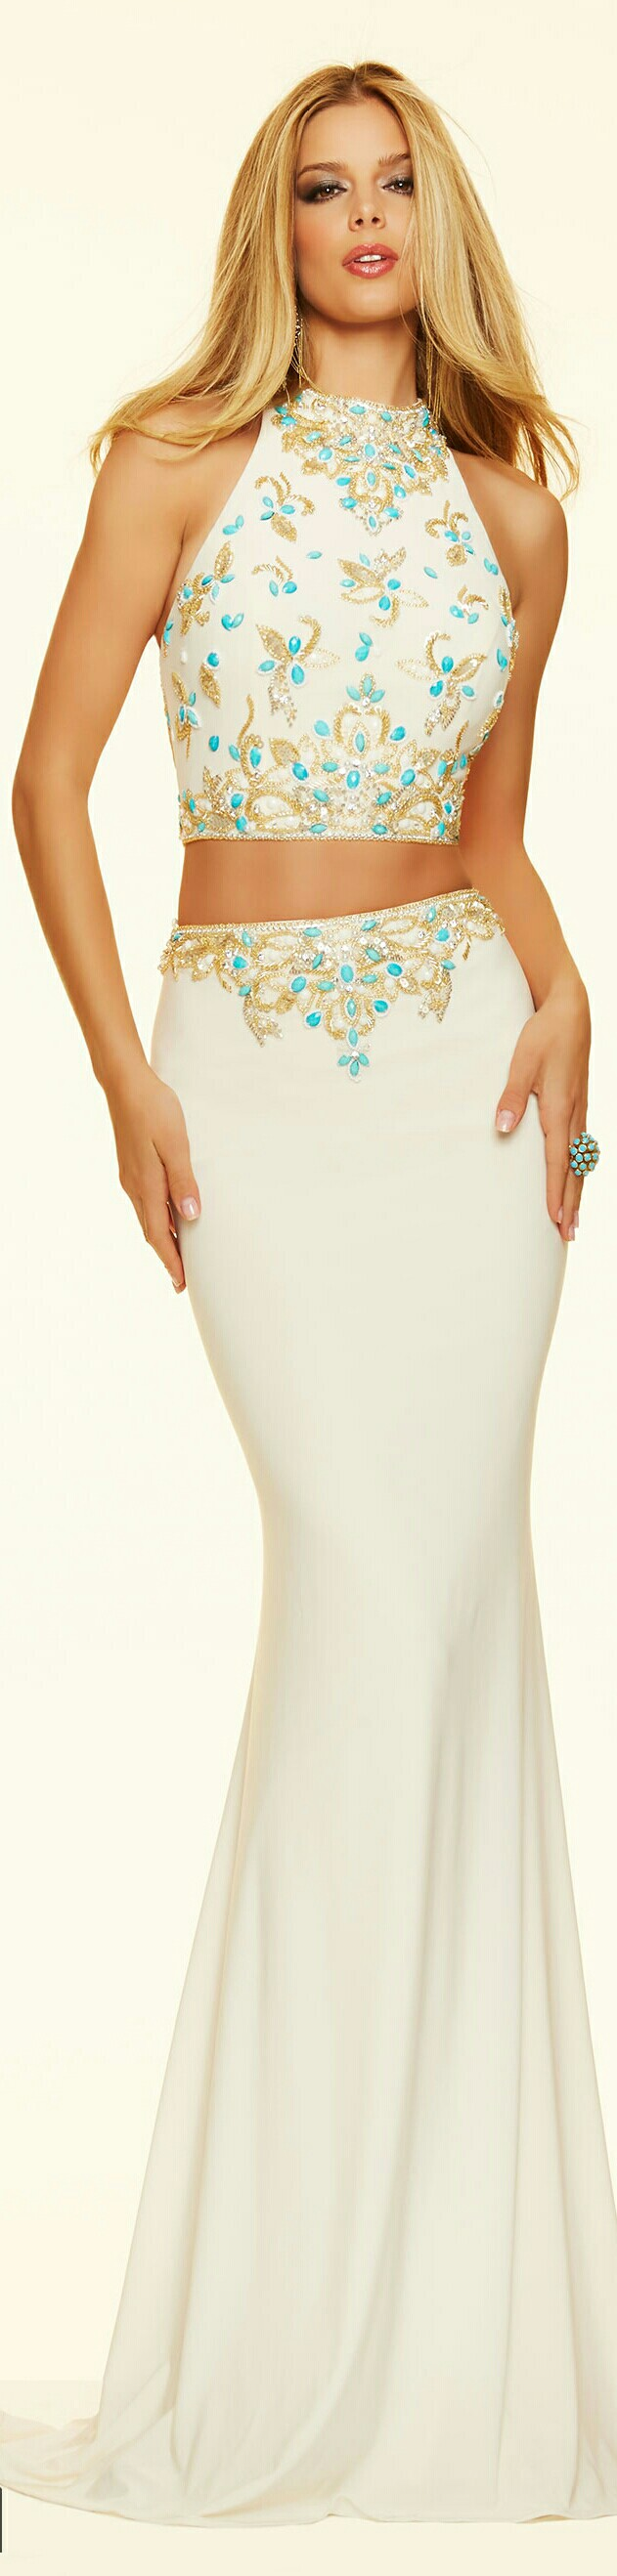 MORI LEE 2-PIECE w. Turquoise/Gold Floral Pattern in Appliques on the Belt Buckle Region of the Skirt & Bodice of the Halter Top #98004